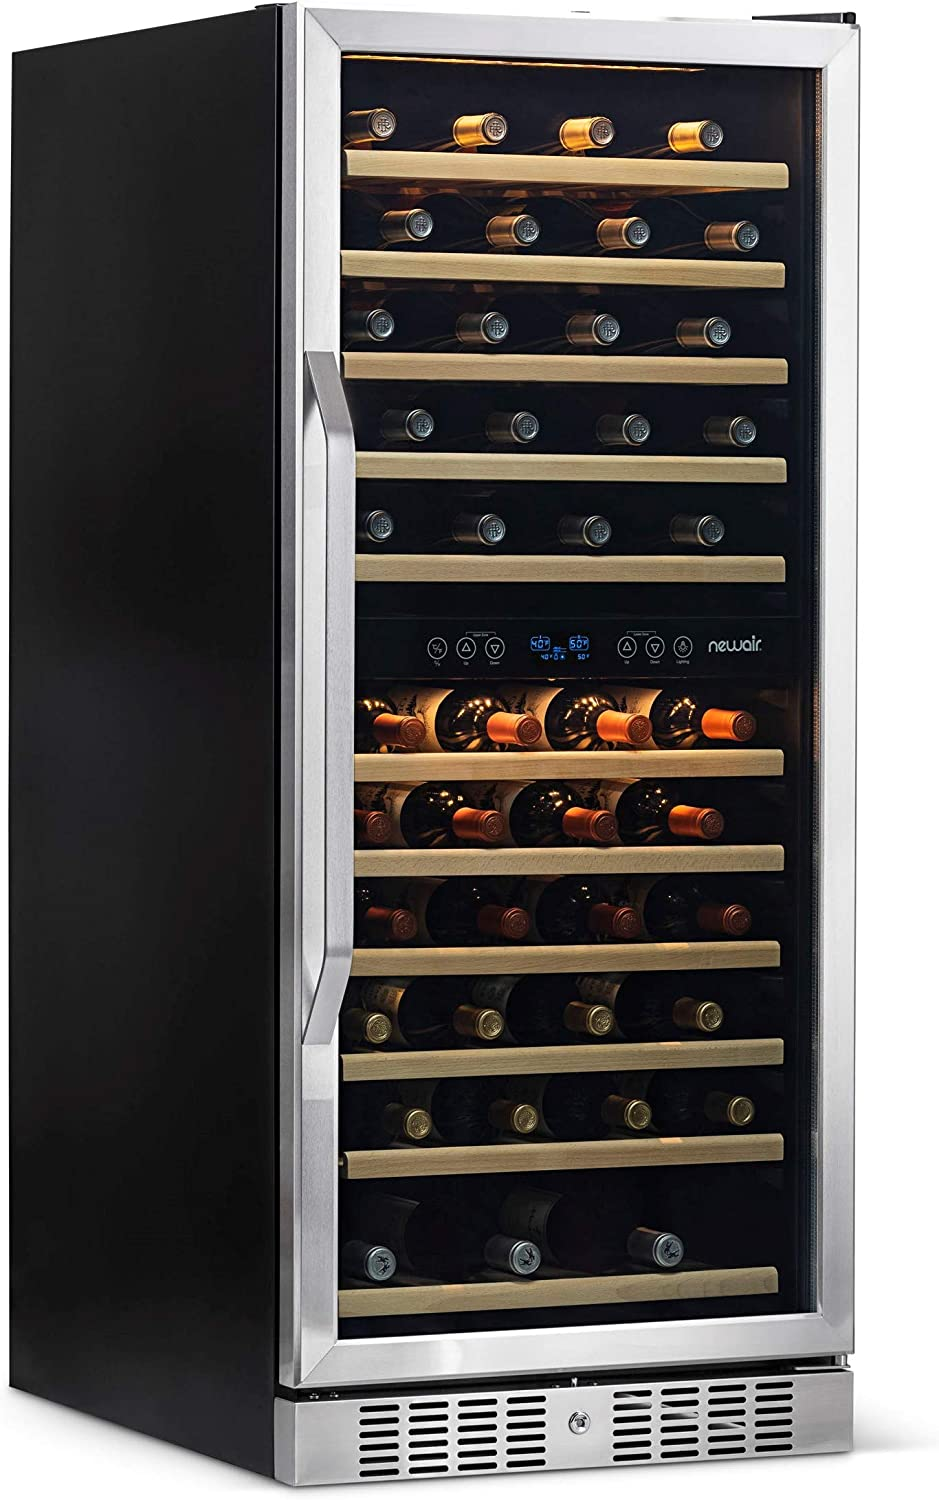 NewAir AWR-1160DB Wine Cooler, 116 Bottle, Stainless Steel Black